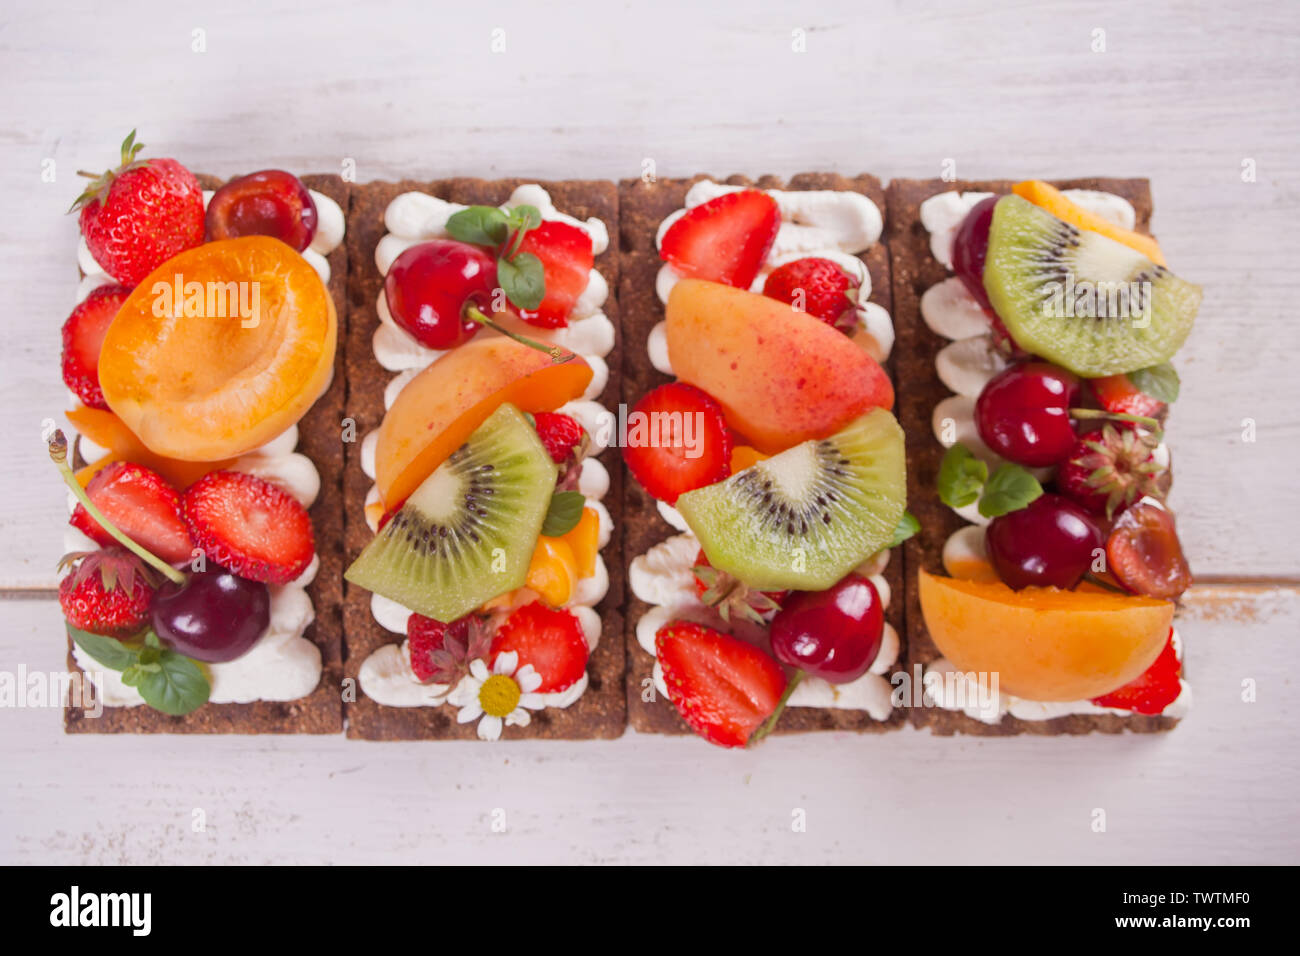 Crisp fitness health bread with creme cheese, fruit and berries on the white wooden background. Top view. - Stock Image